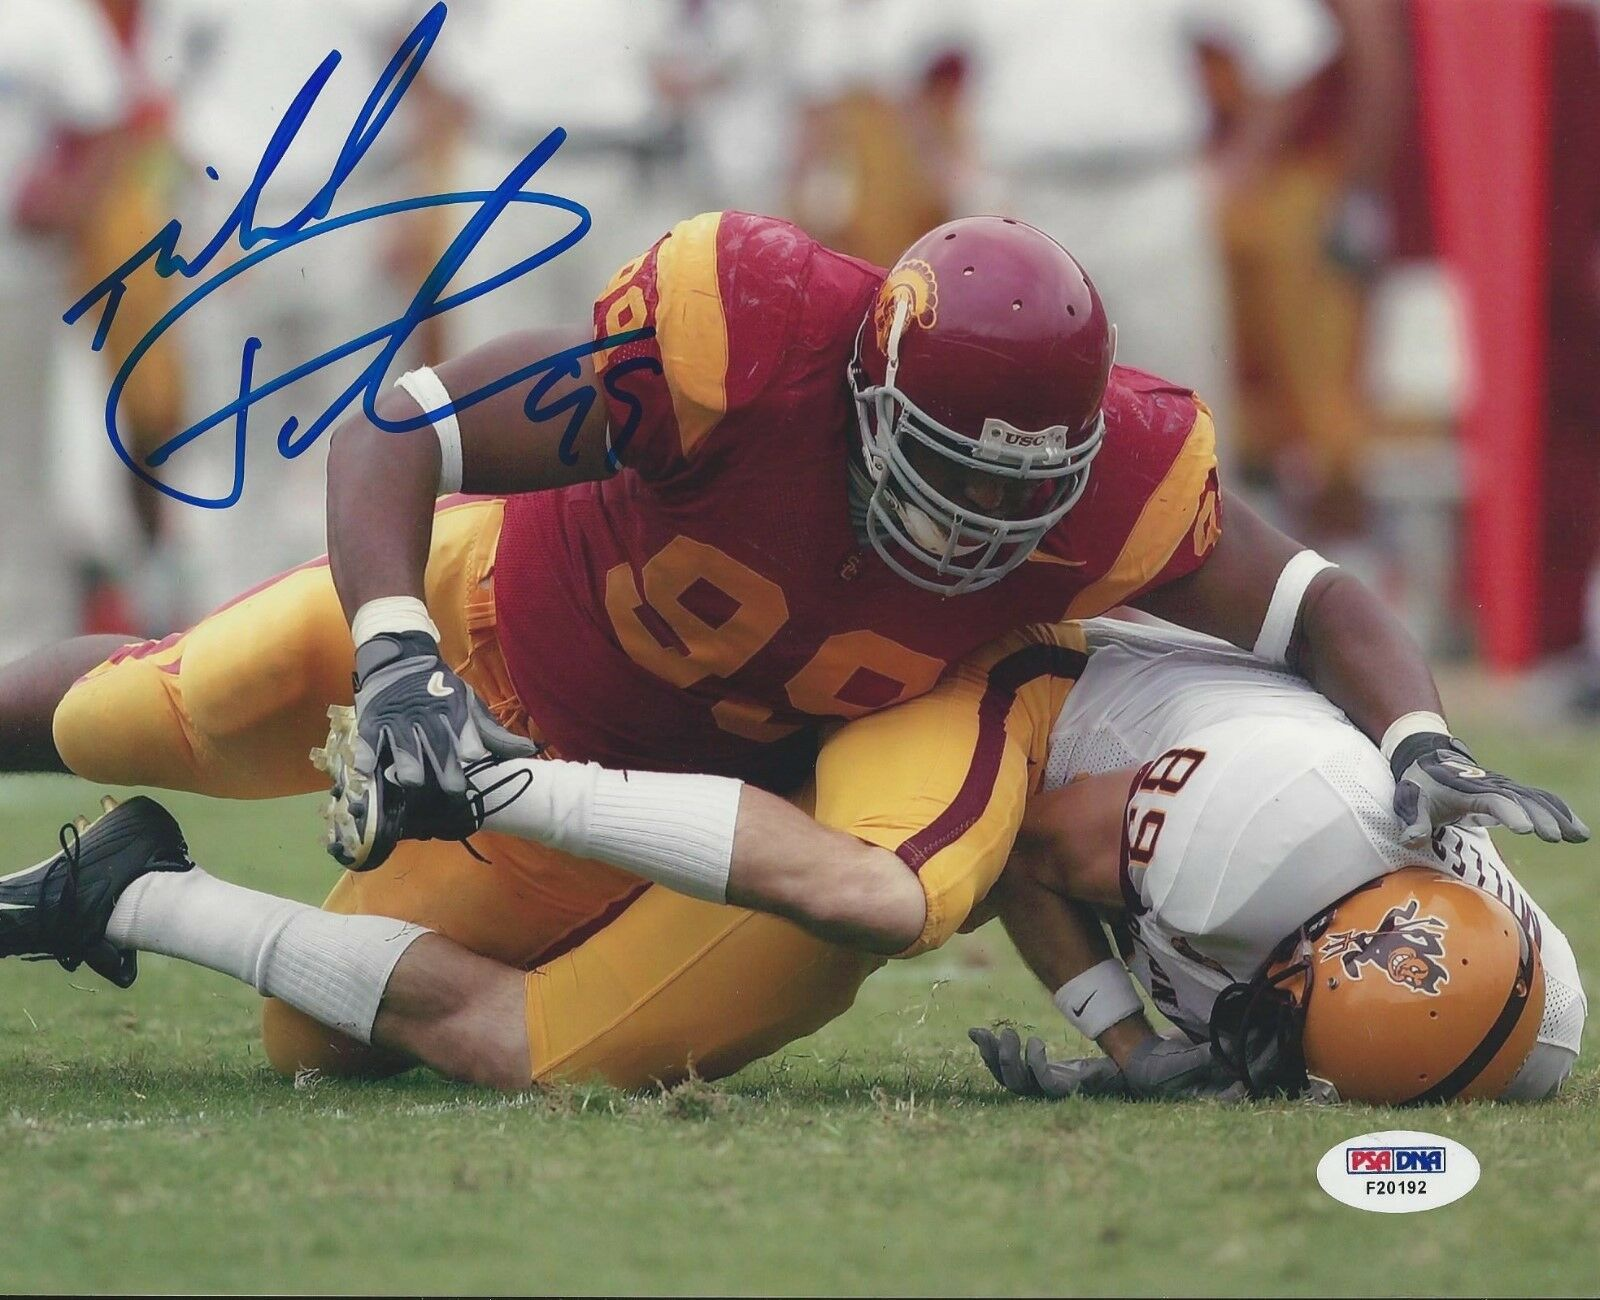 Mike Patterson USC Trojans signed 8x10 photo PSA/DNA # F20192